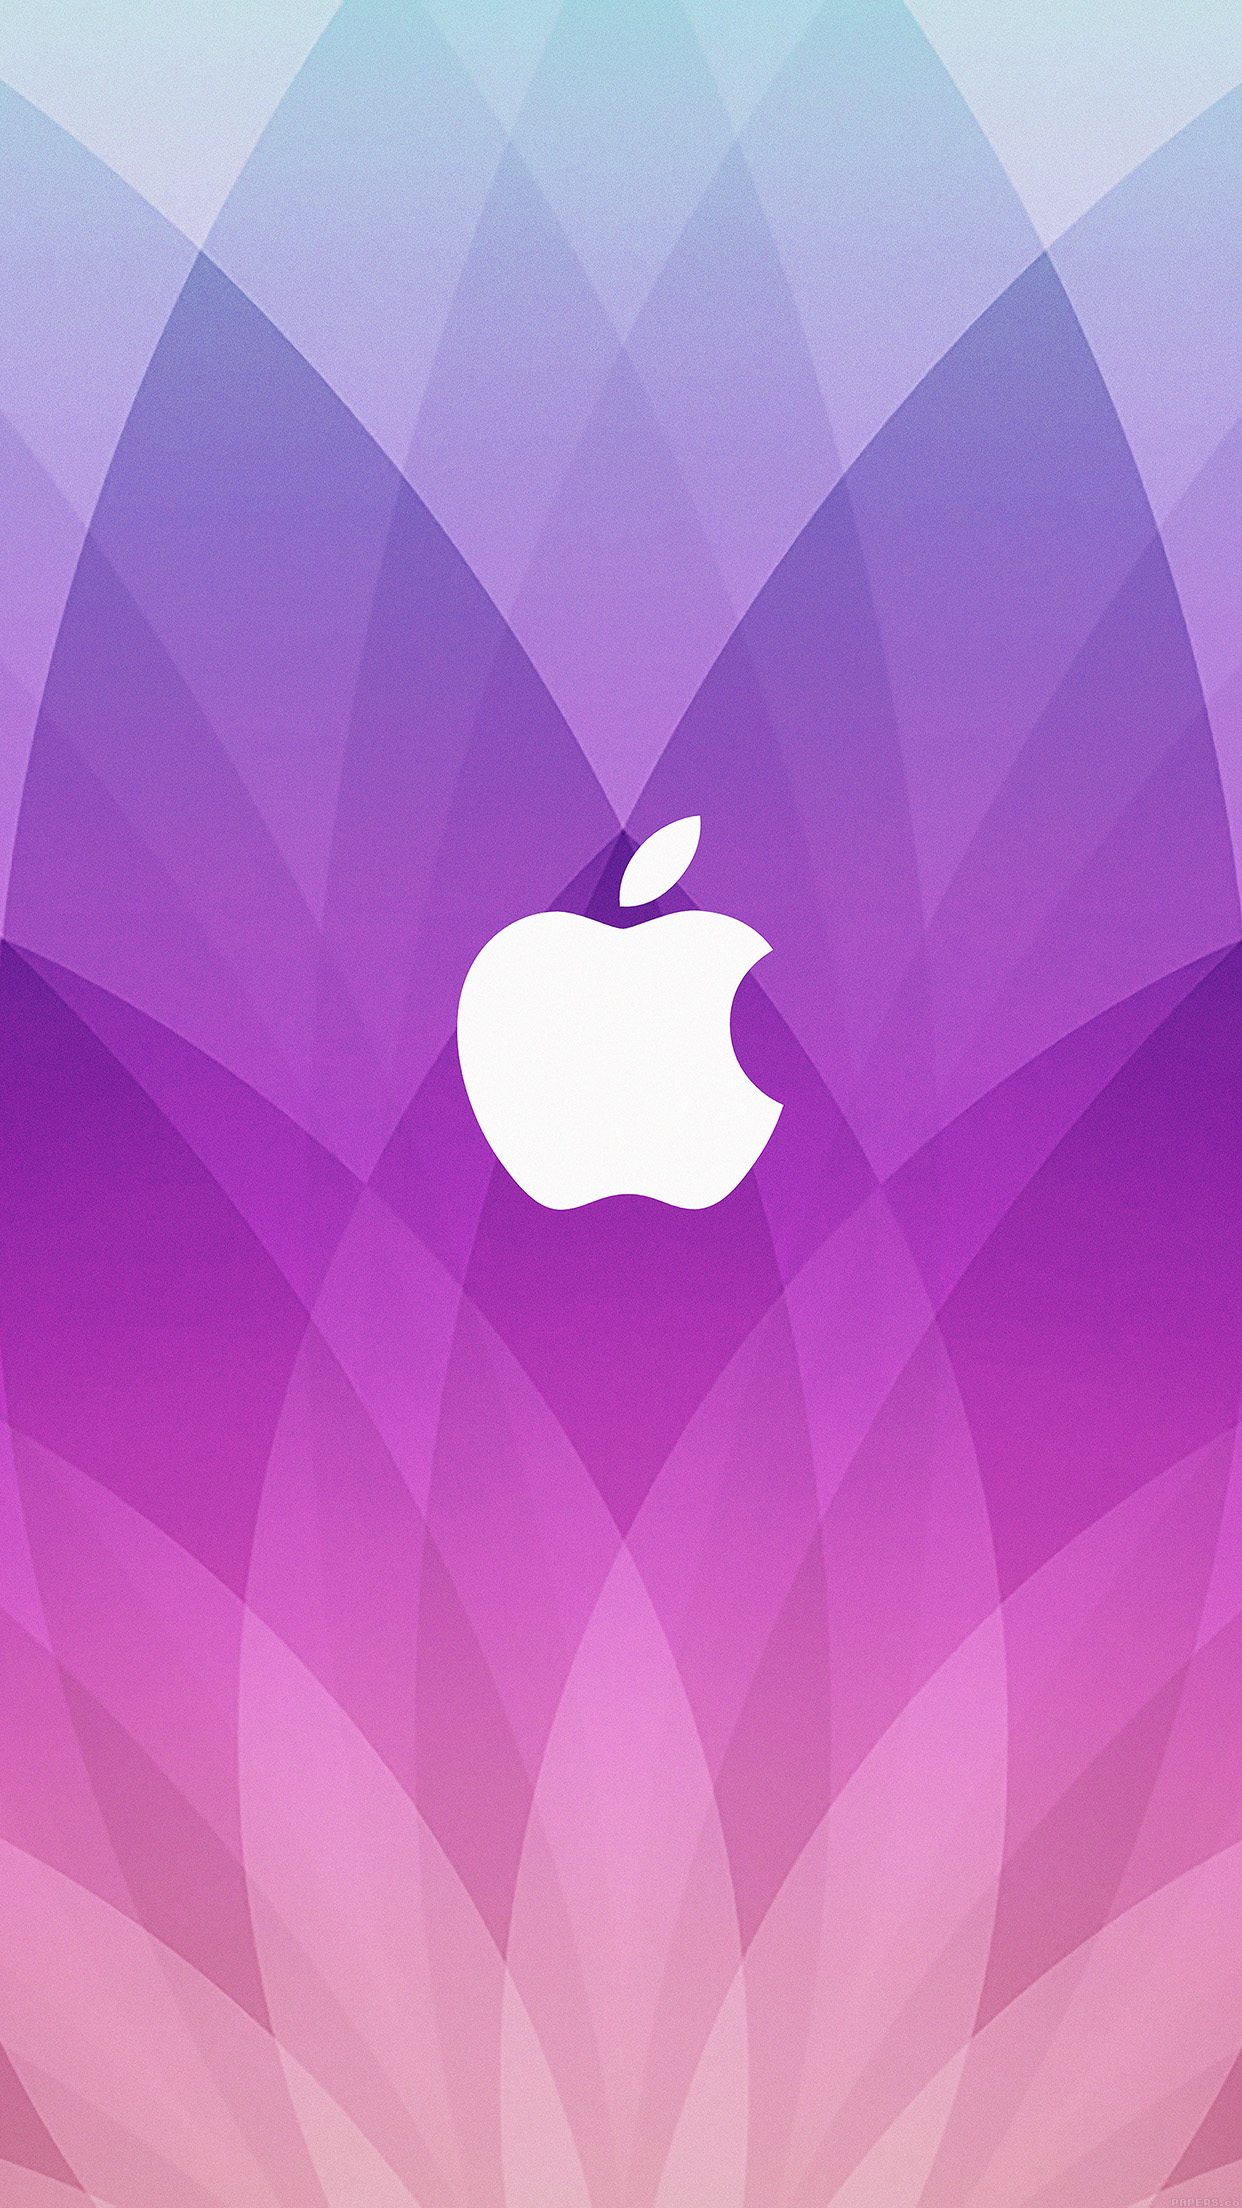 Apple Logo Color Wallpaper For Iphone X 8 7 6 Free Download On